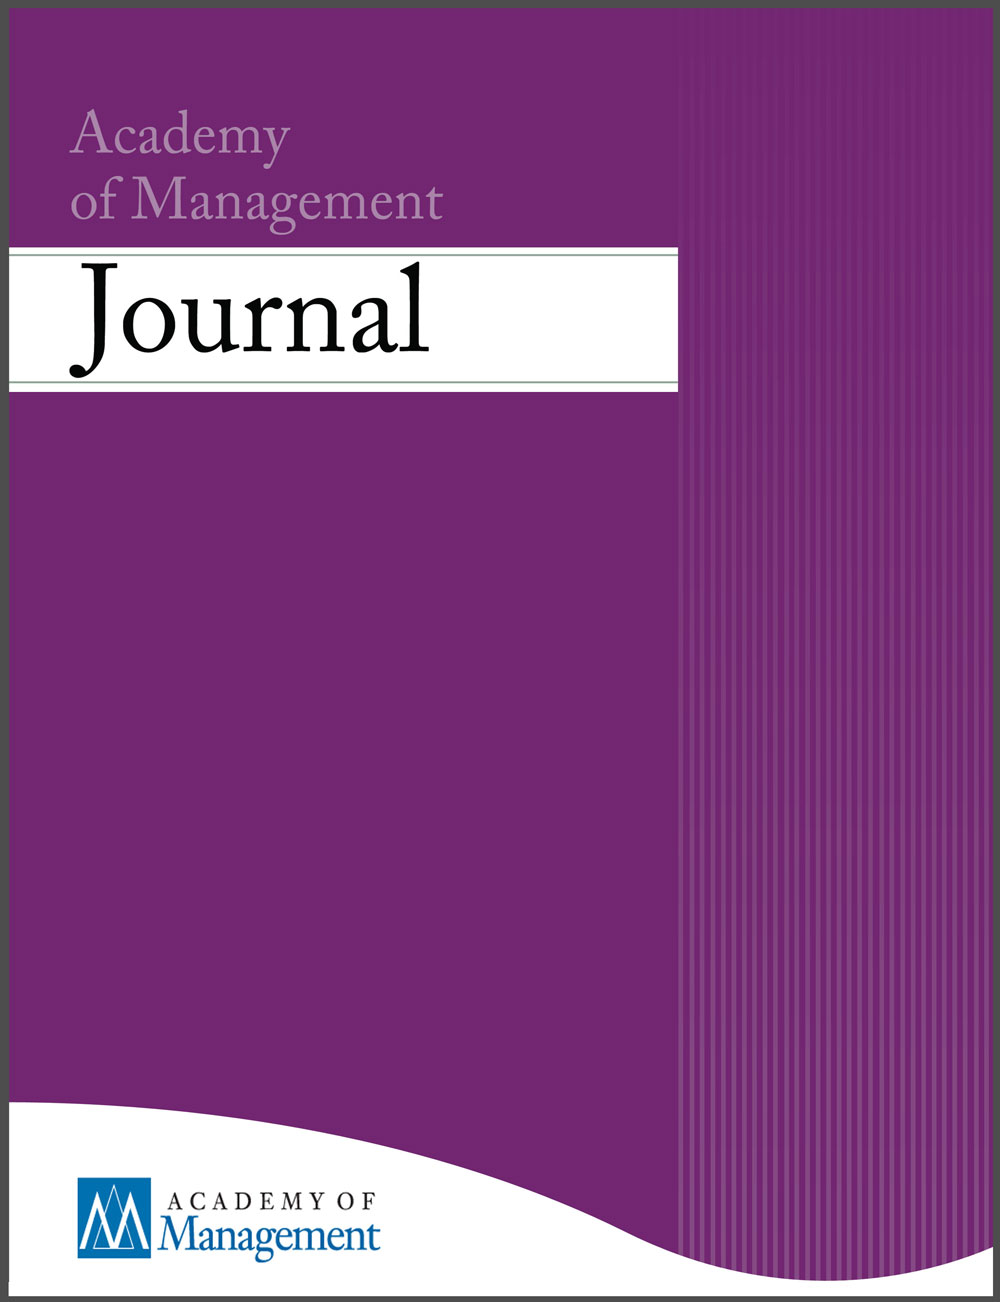 Journal logo